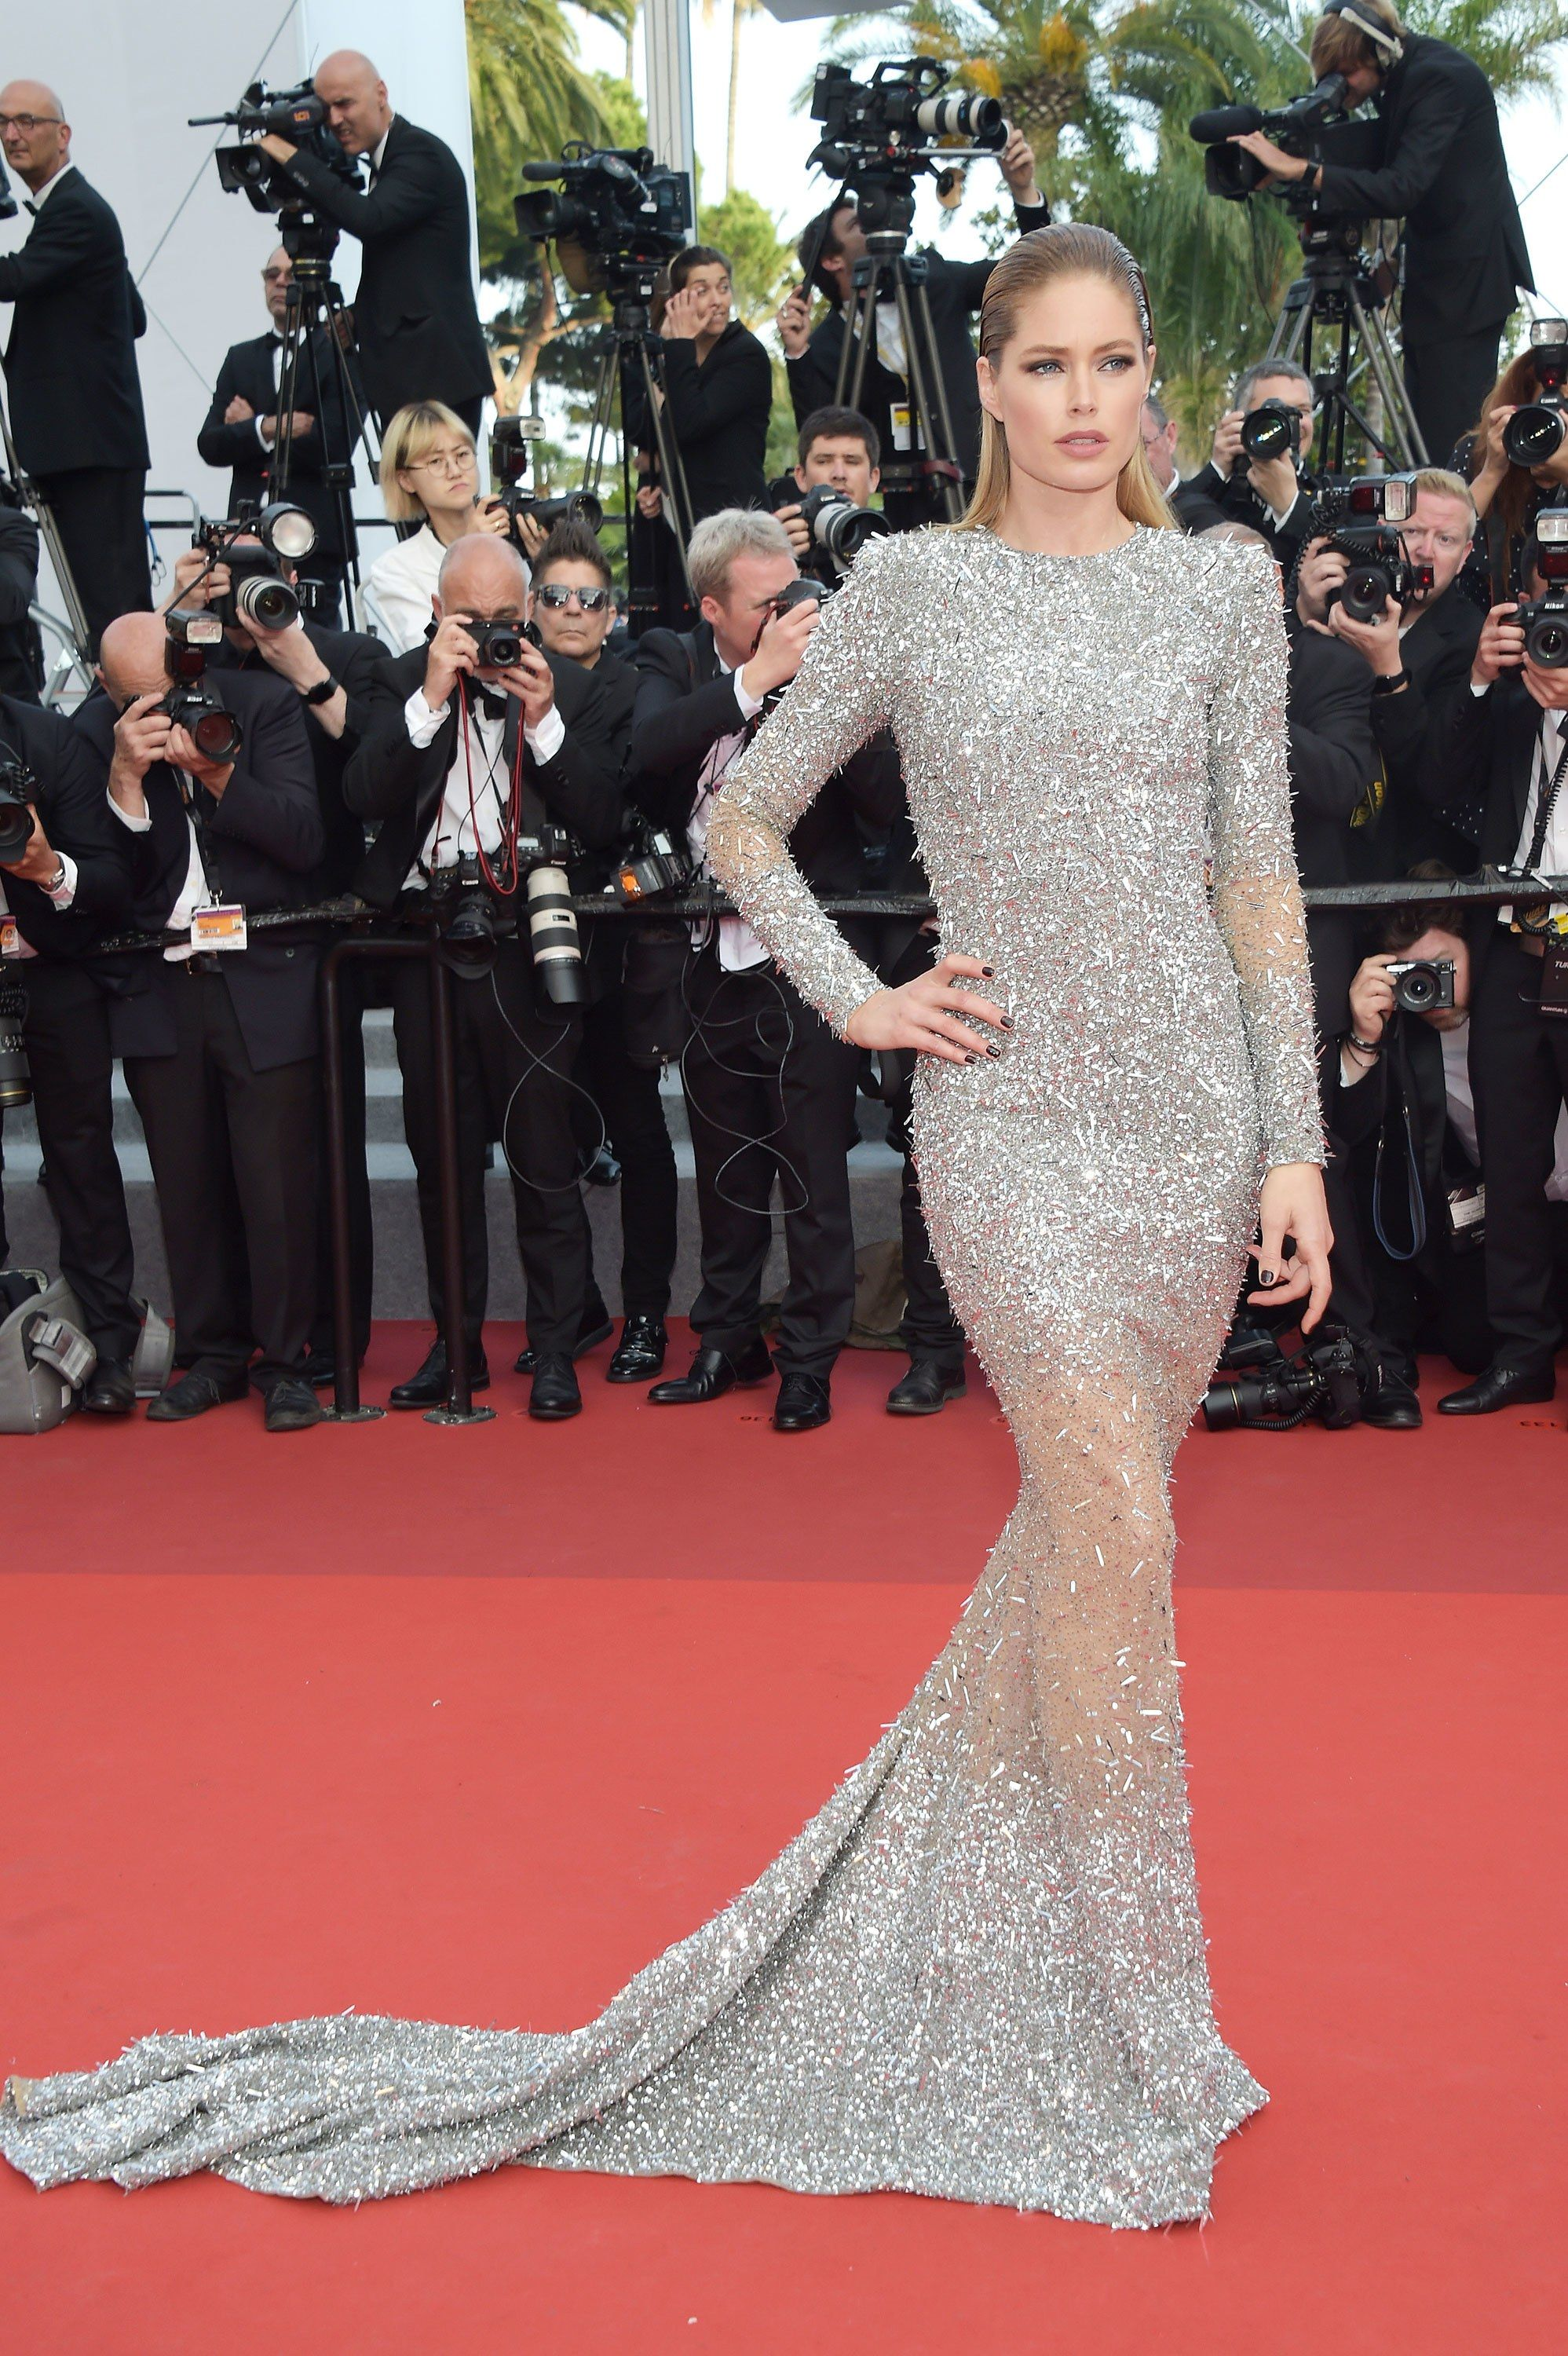 Irina Shayk Hits Her First Post Pregnancy Red Carpet At The Cannes Film Festival